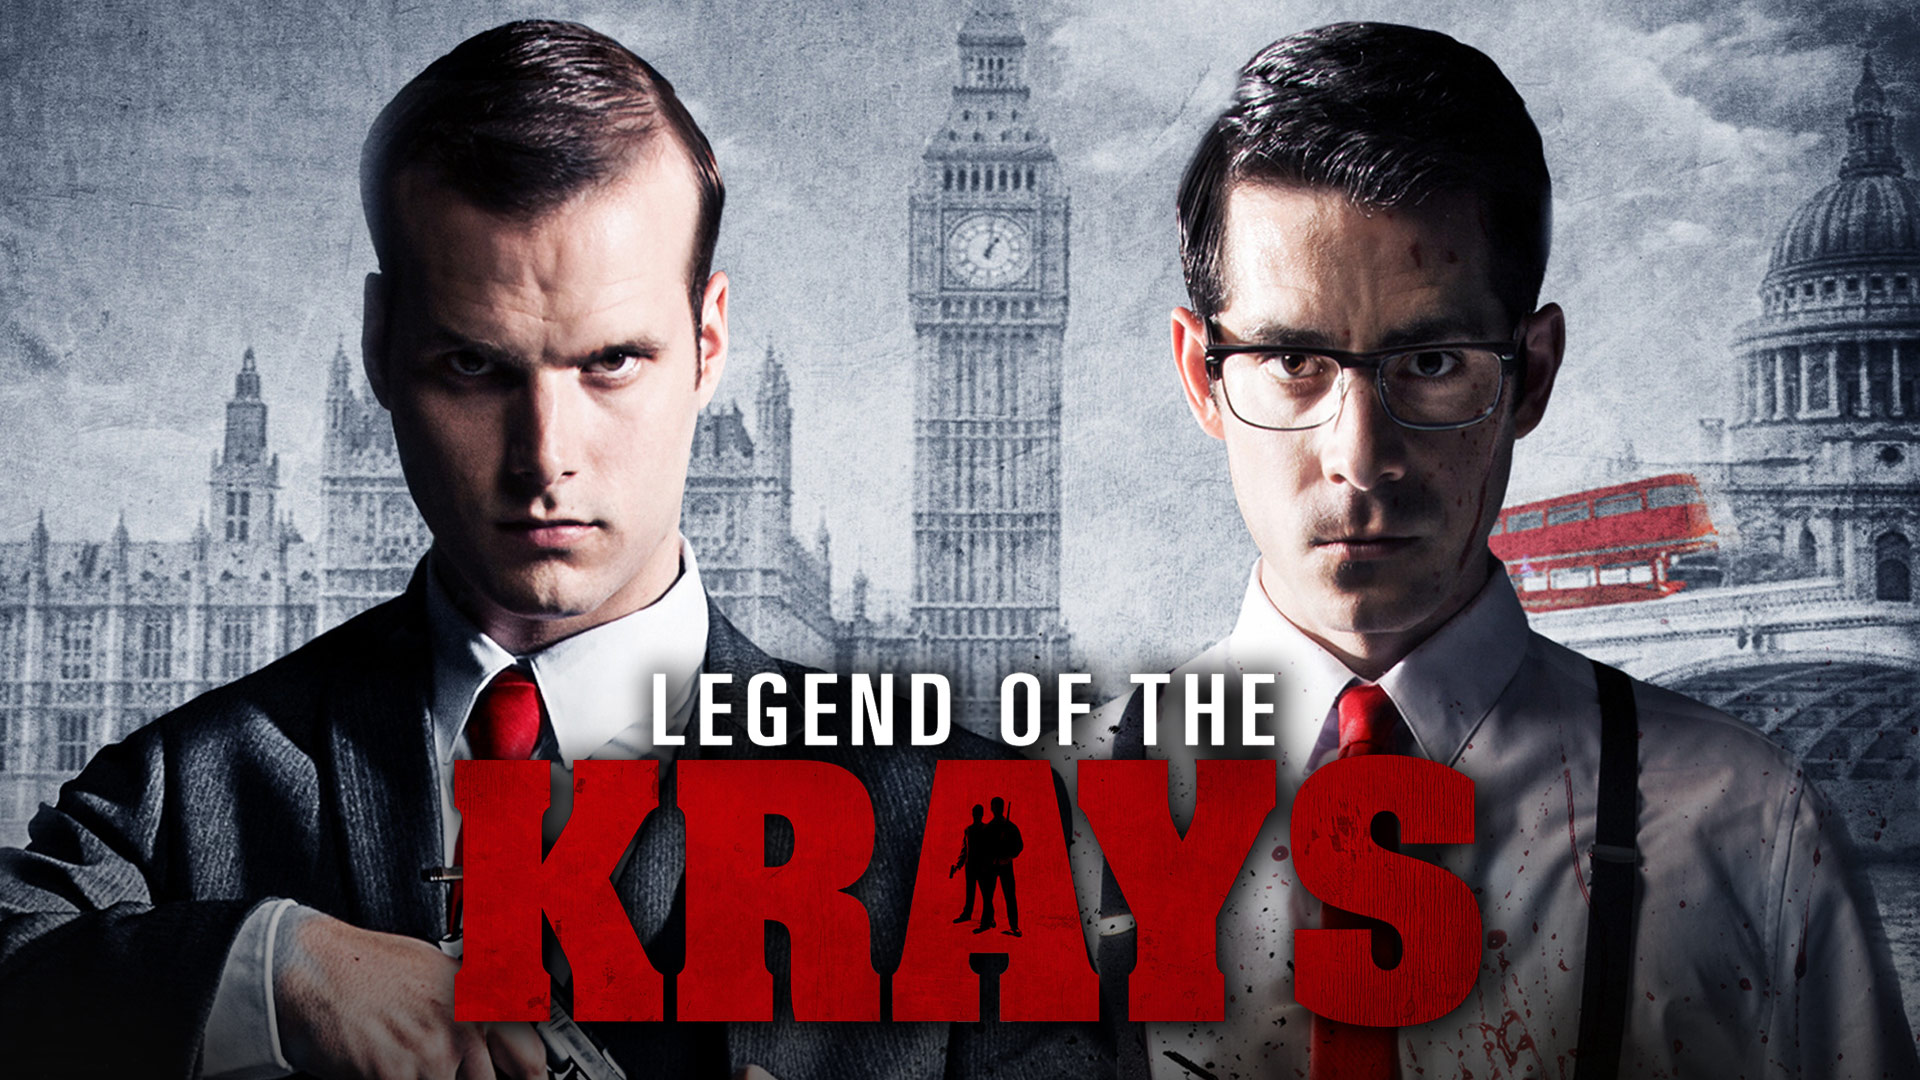 Legend of the Krays